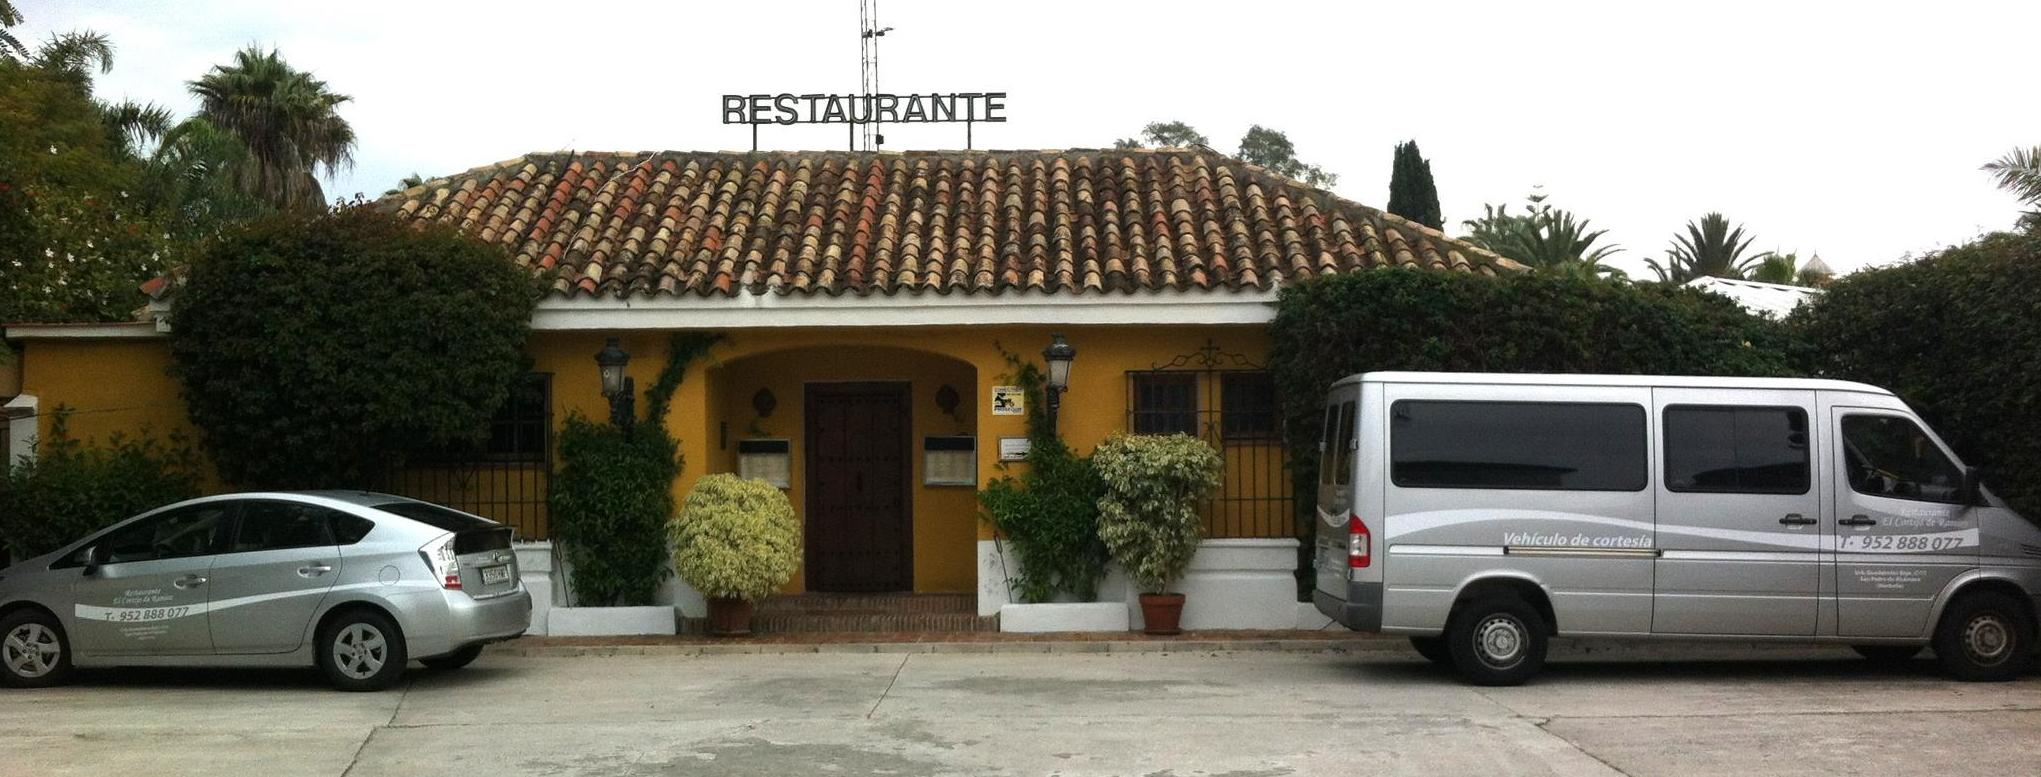 Restaurants and catering service available for events in Marbella